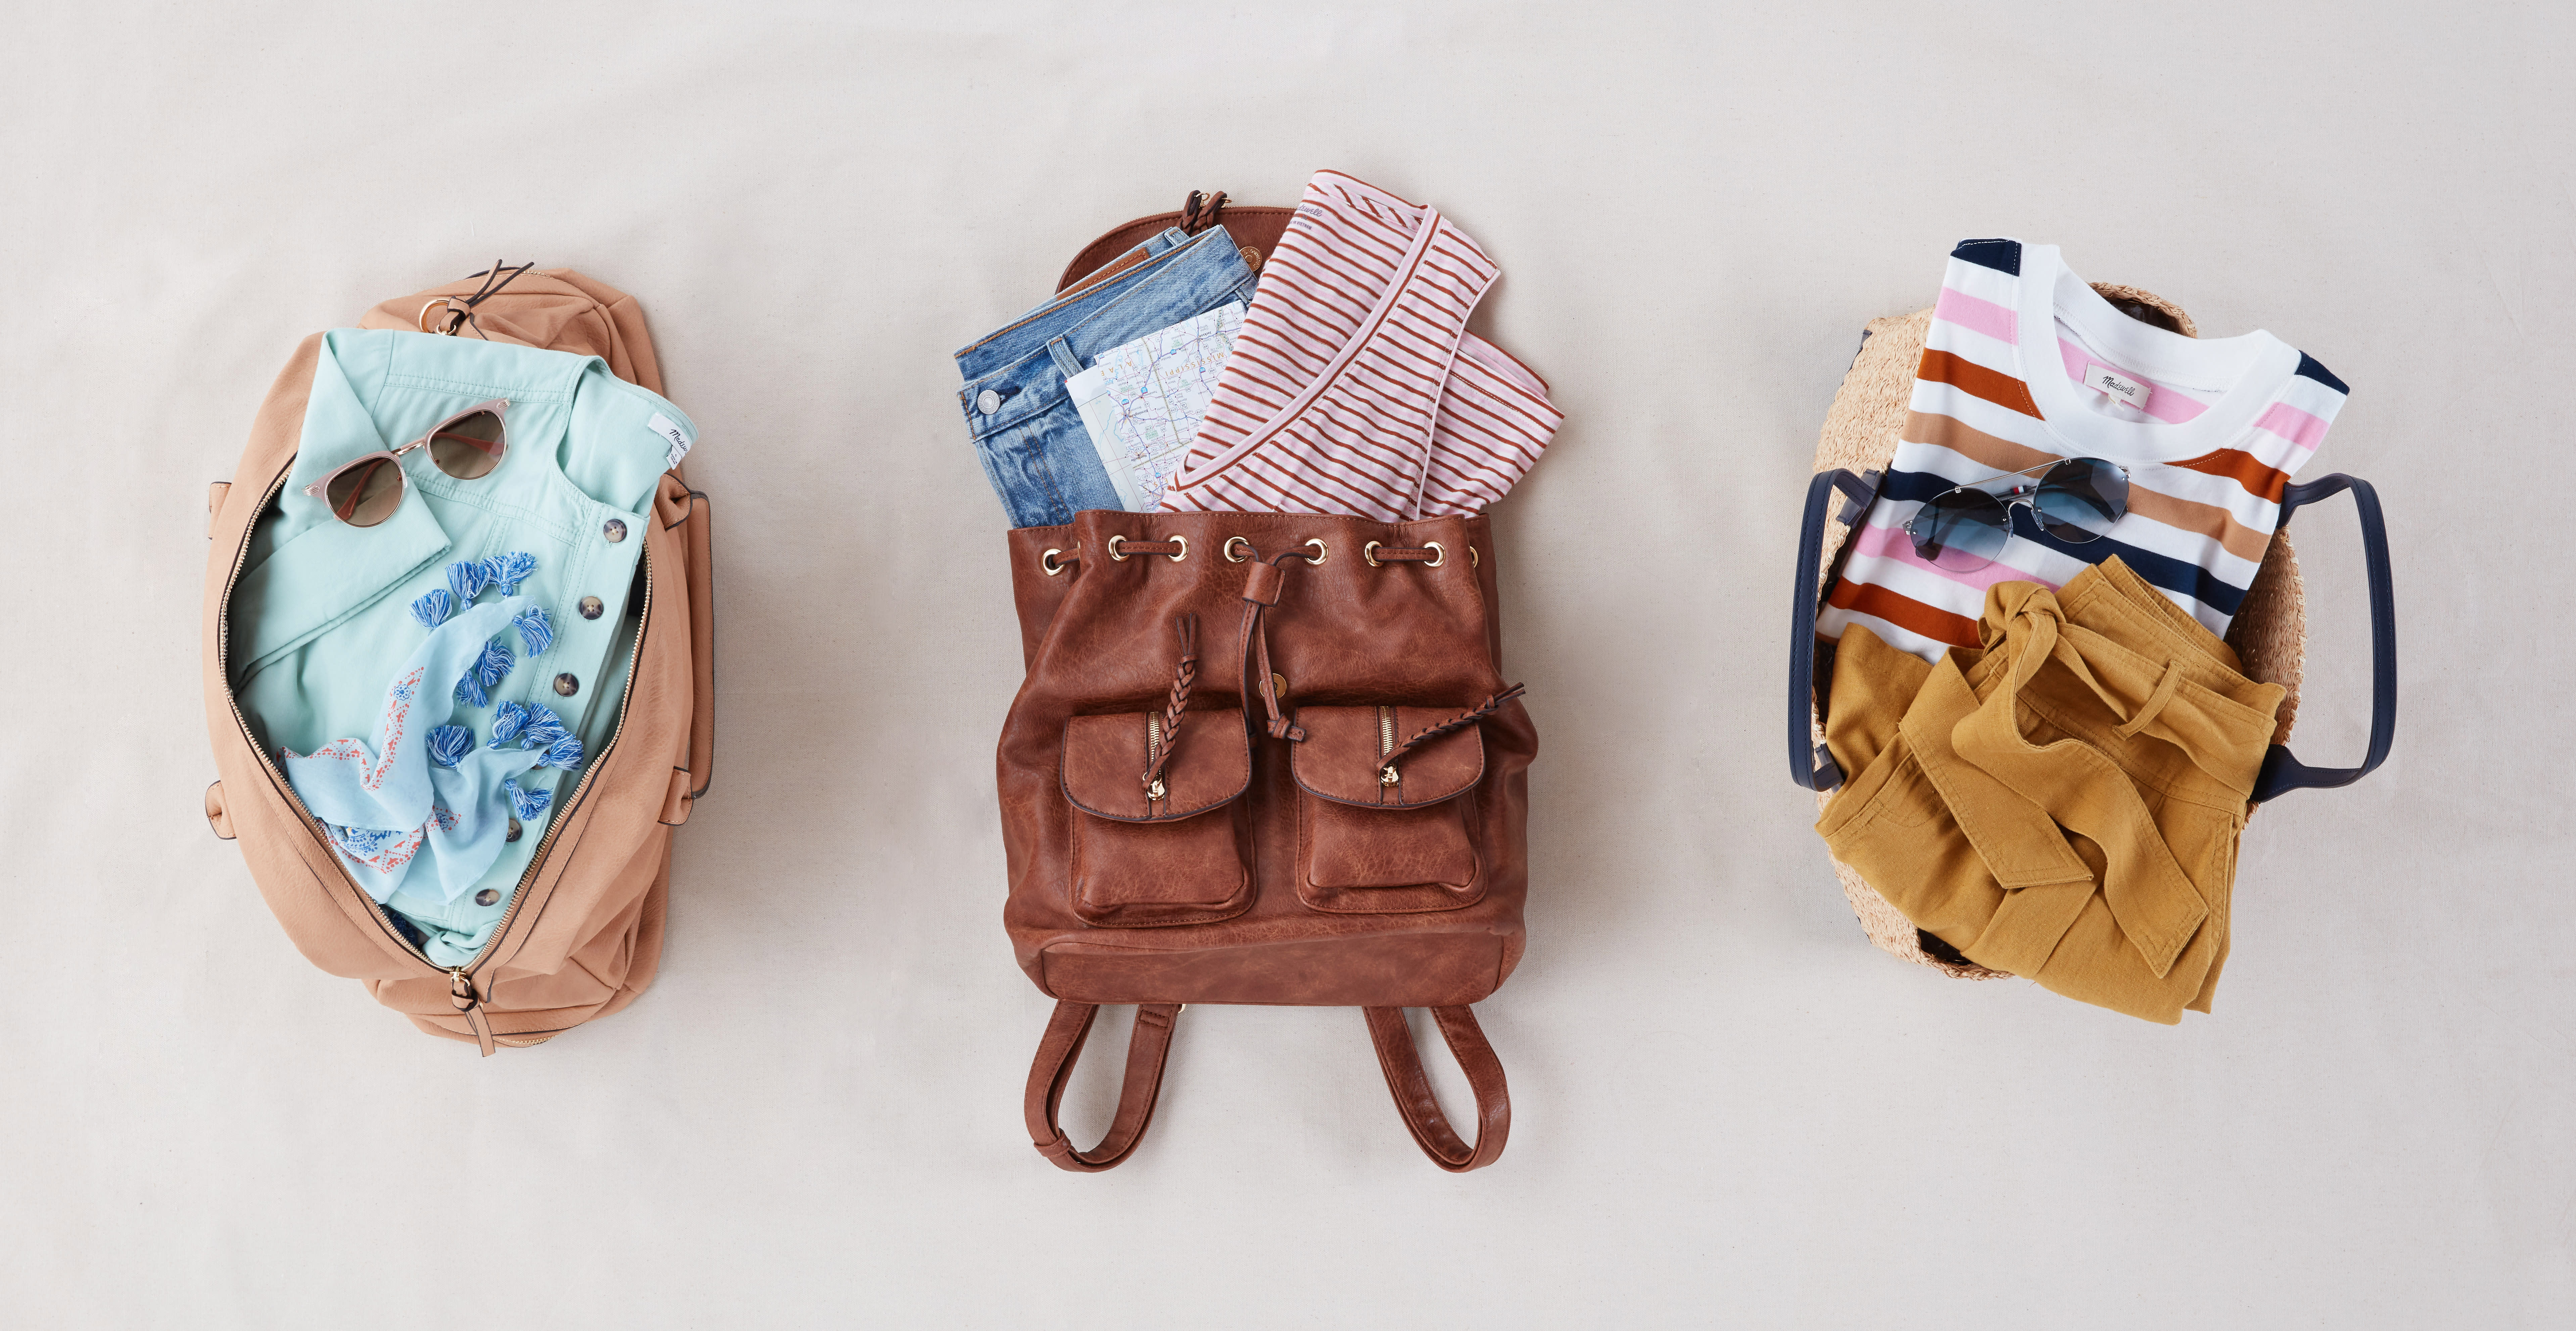 Weekend bags filled with Memorial Day outfits